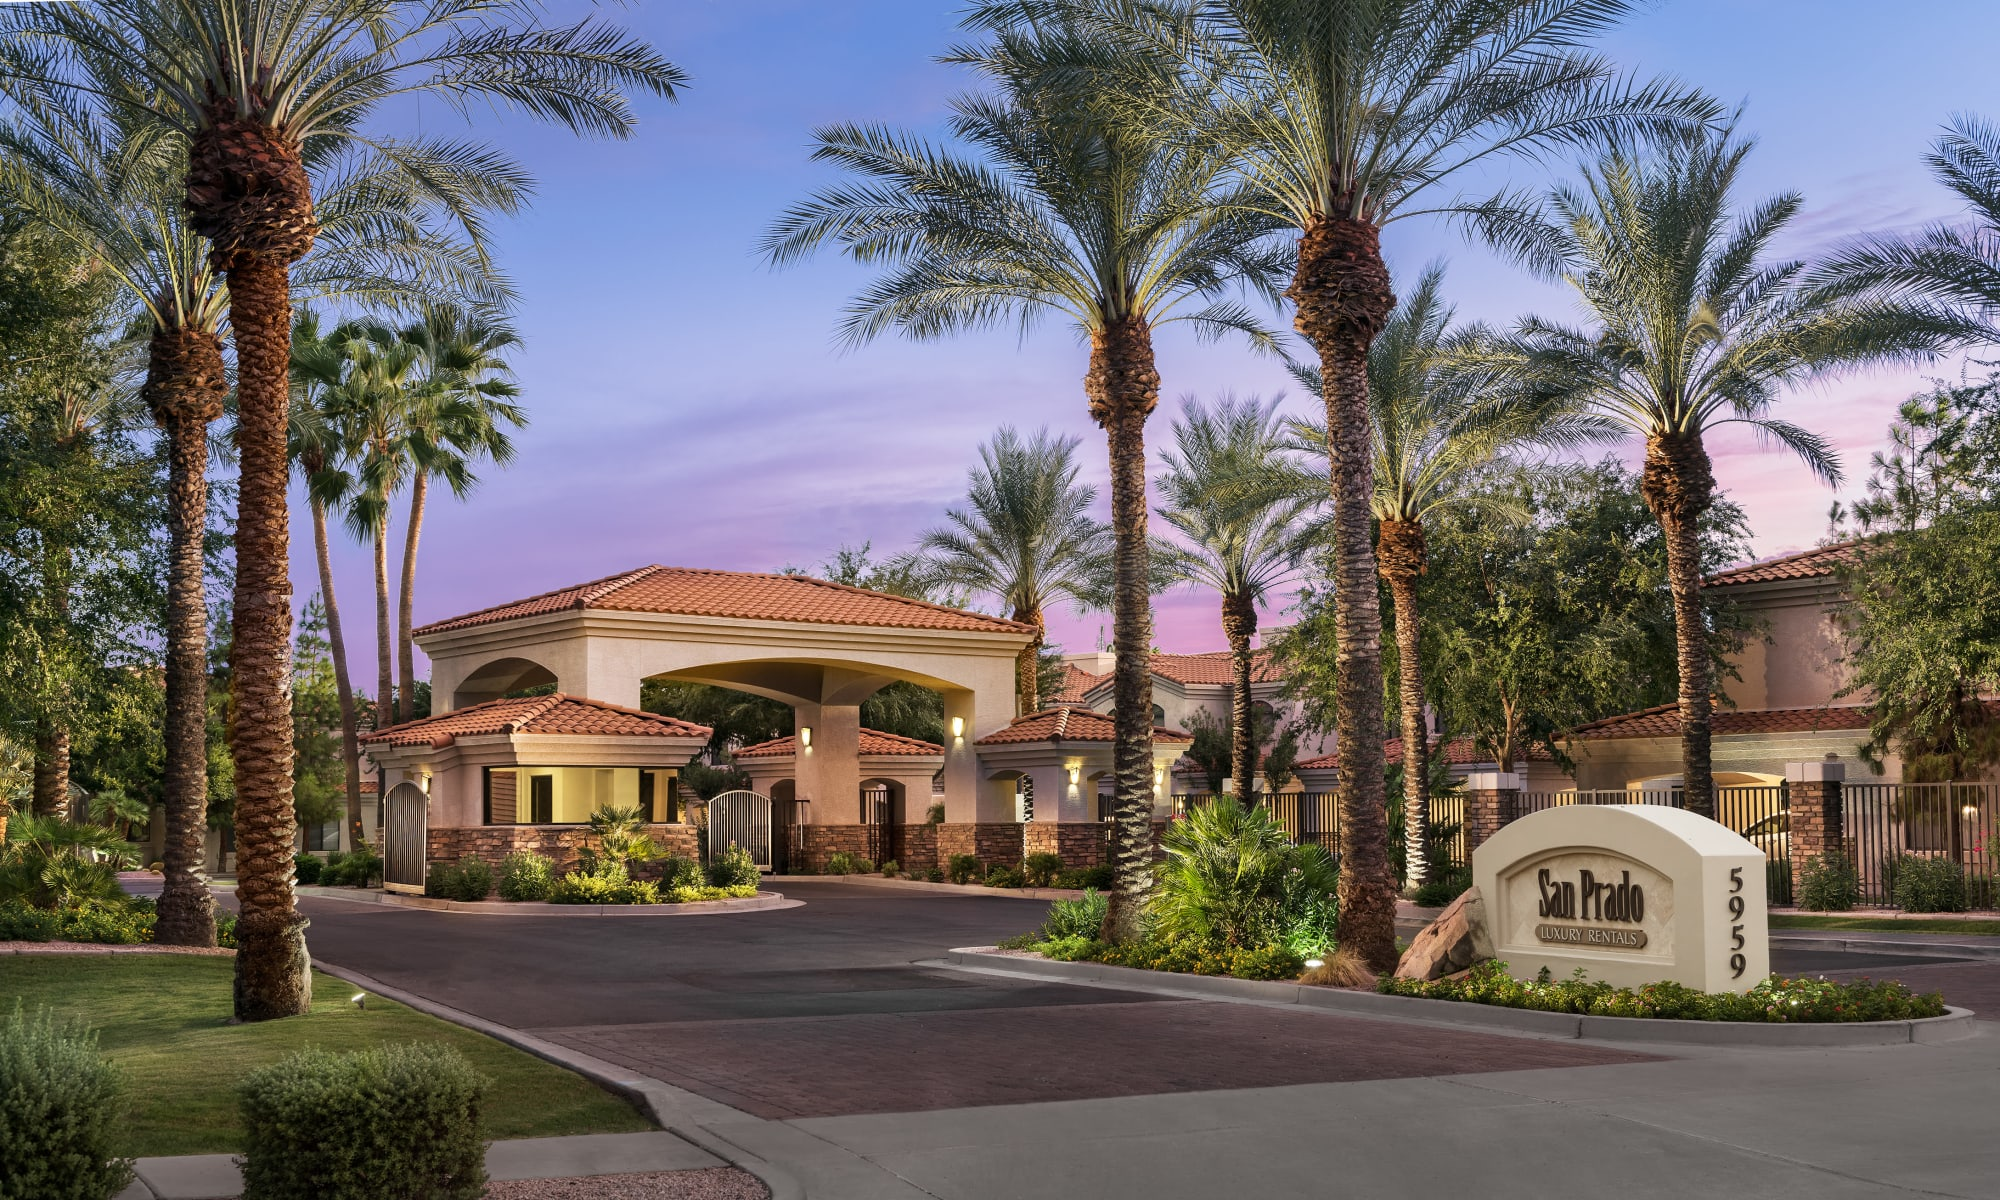 Apartments at San Prado in Glendale, Arizona